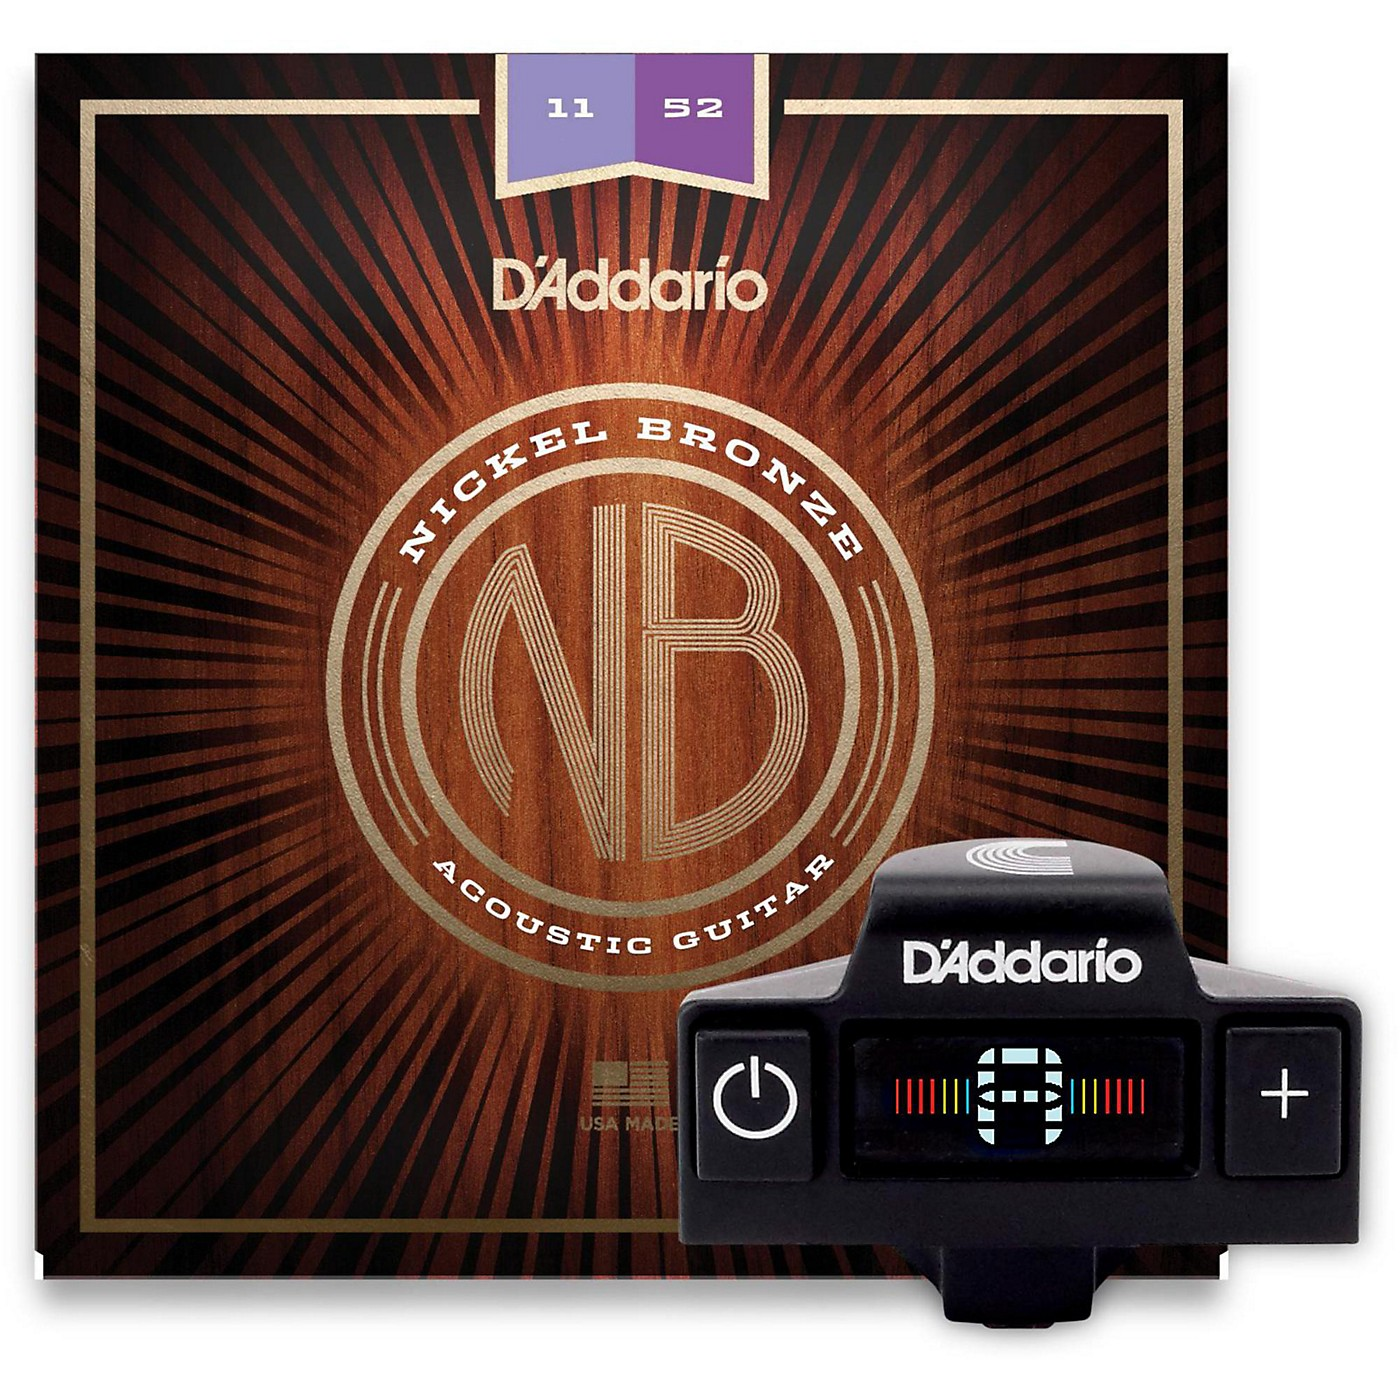 D'Addario NB1152 Nickel Bronze Custom Light 3-Pack Acoustic Strings and NS Micro Soundhole Tuner with Color Screen thumbnail